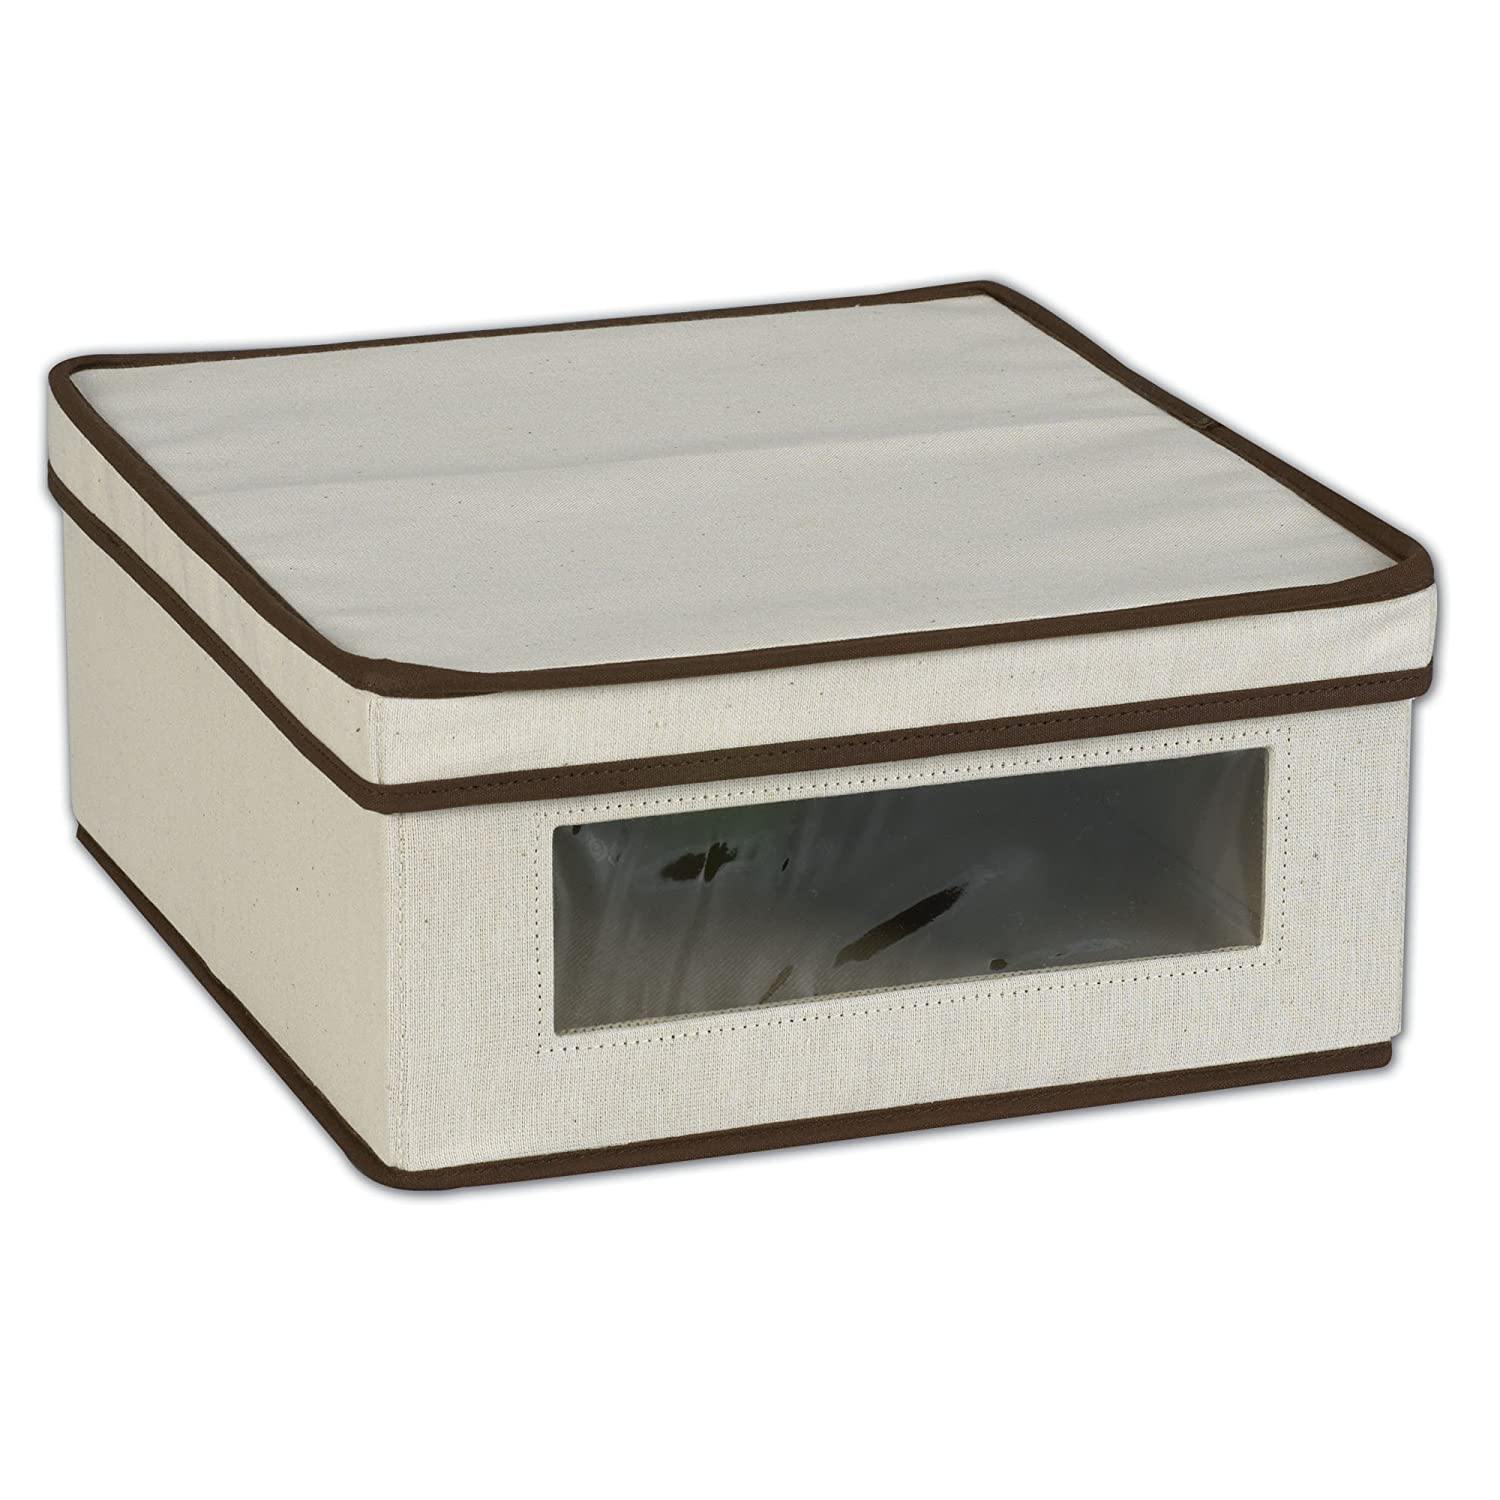 Amazon.com: Household Essentials 510 Vision Storage Box   Natural Canvas  With Brown Trim   Small: Home U0026 Kitchen